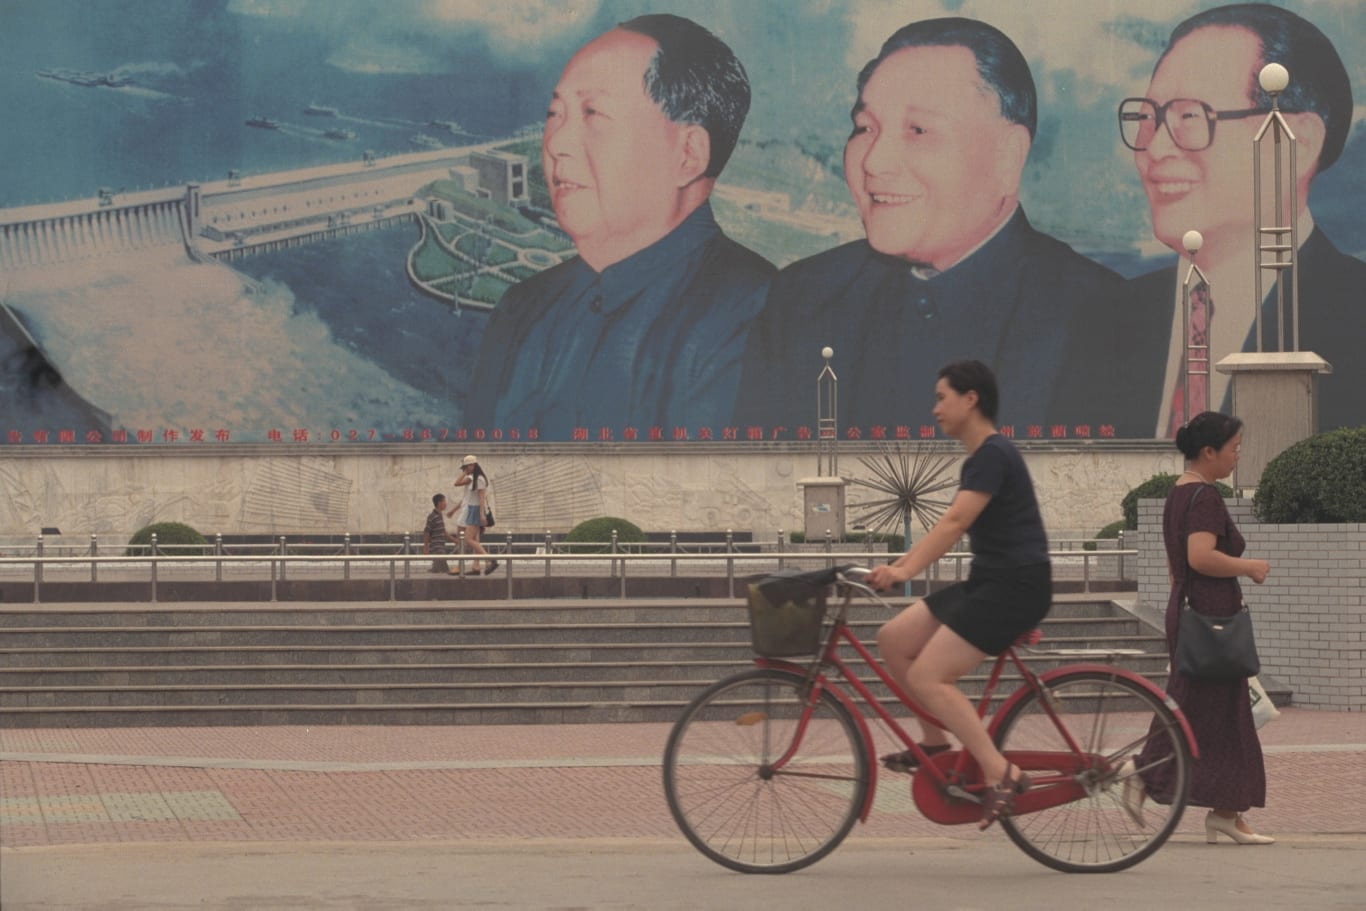 The faces of Chinese leaders Mao Zedong, Deng Xiaoping and Jiang Zemin appear on a large mural of the Three Gorges Dam in Wuhan.